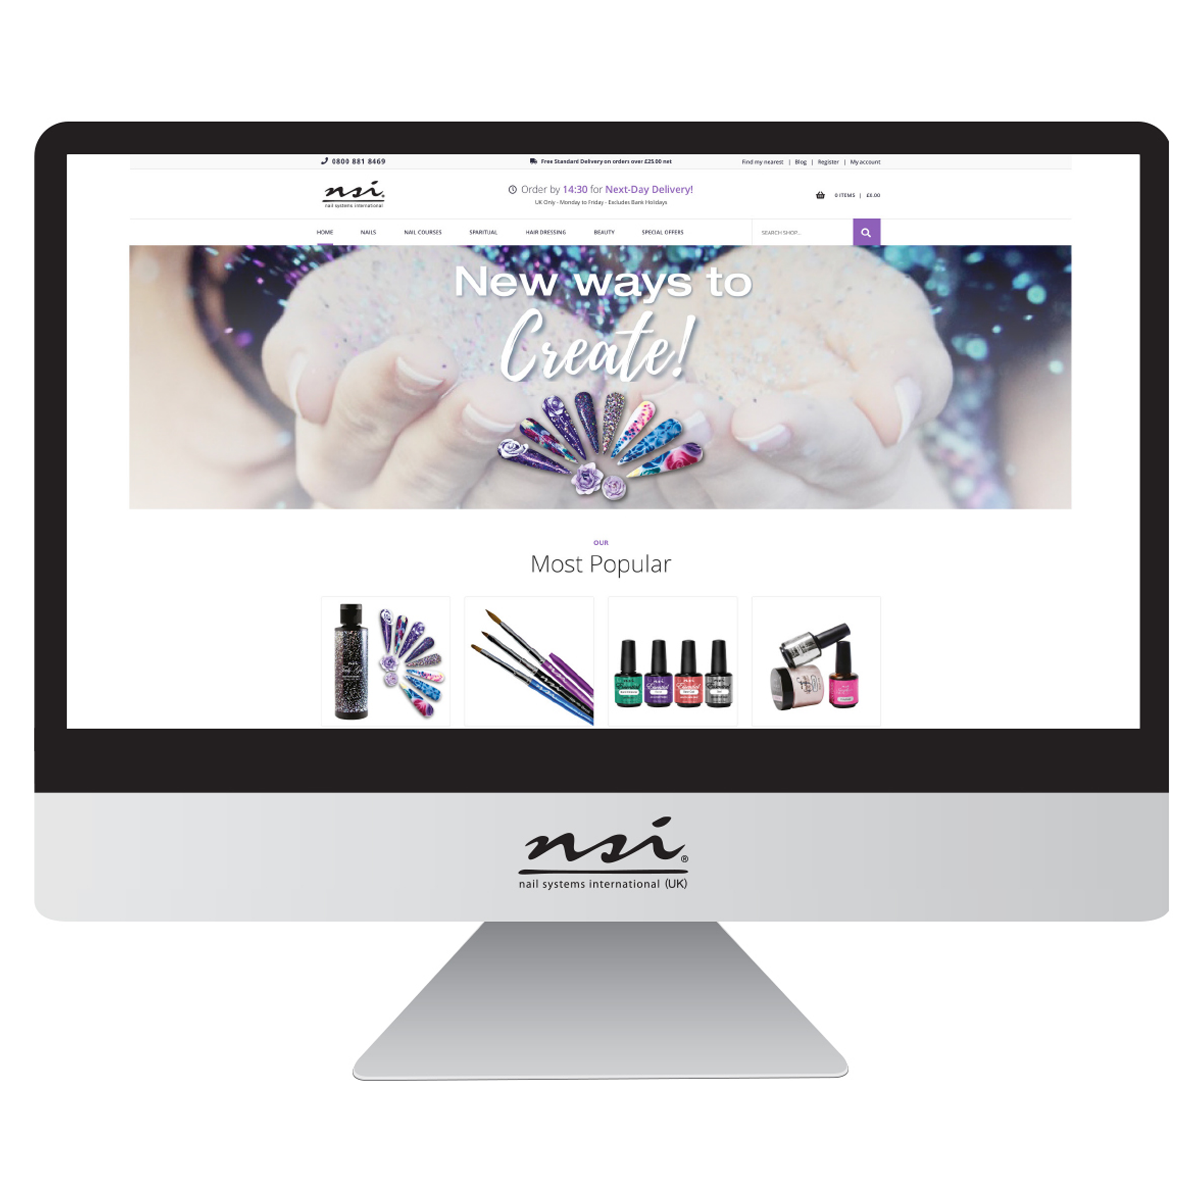 NSI Launches new website for 2019